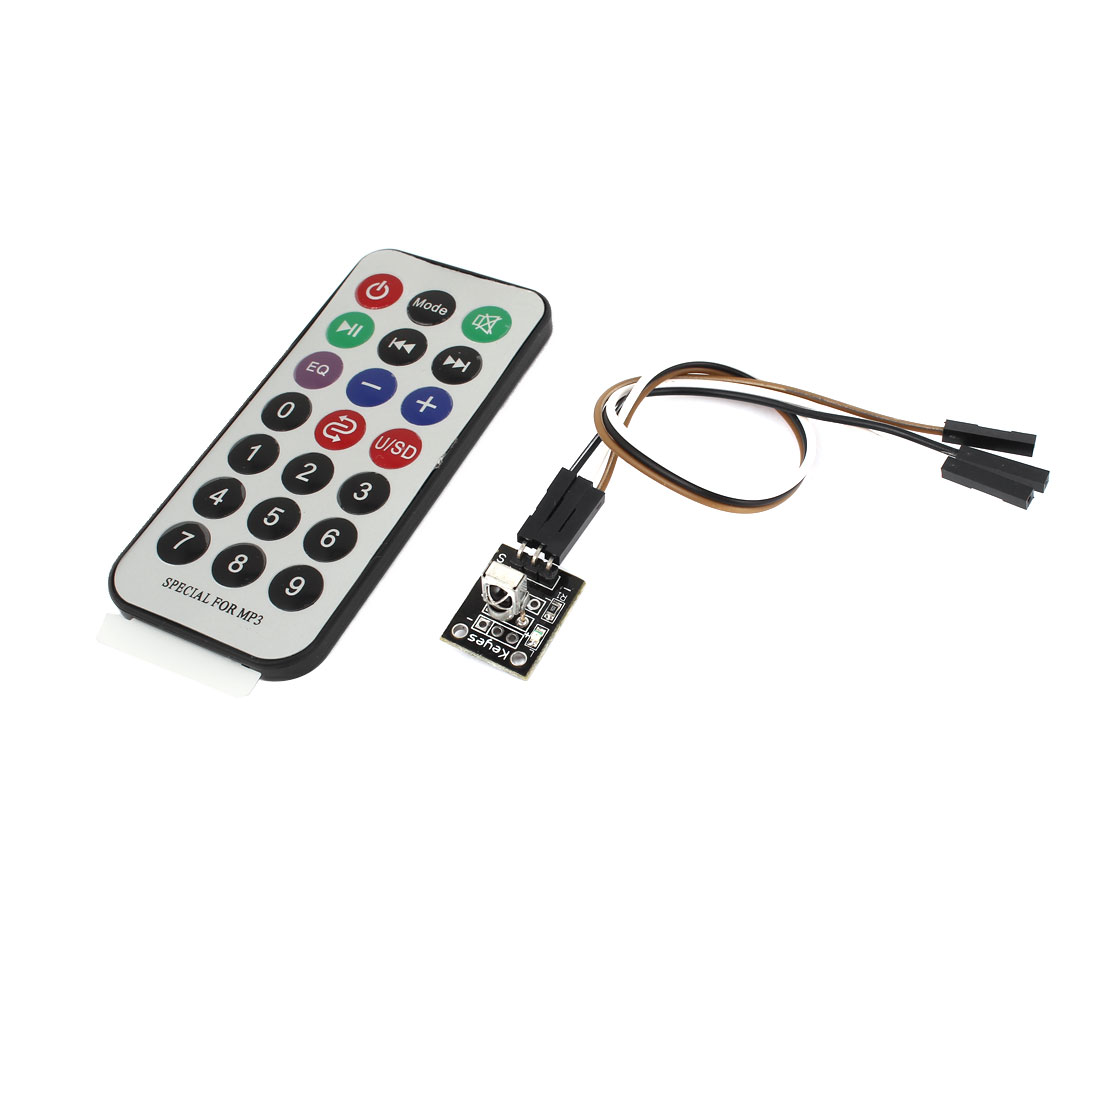 IR Wireless Remote Control Infrared DIY Kit